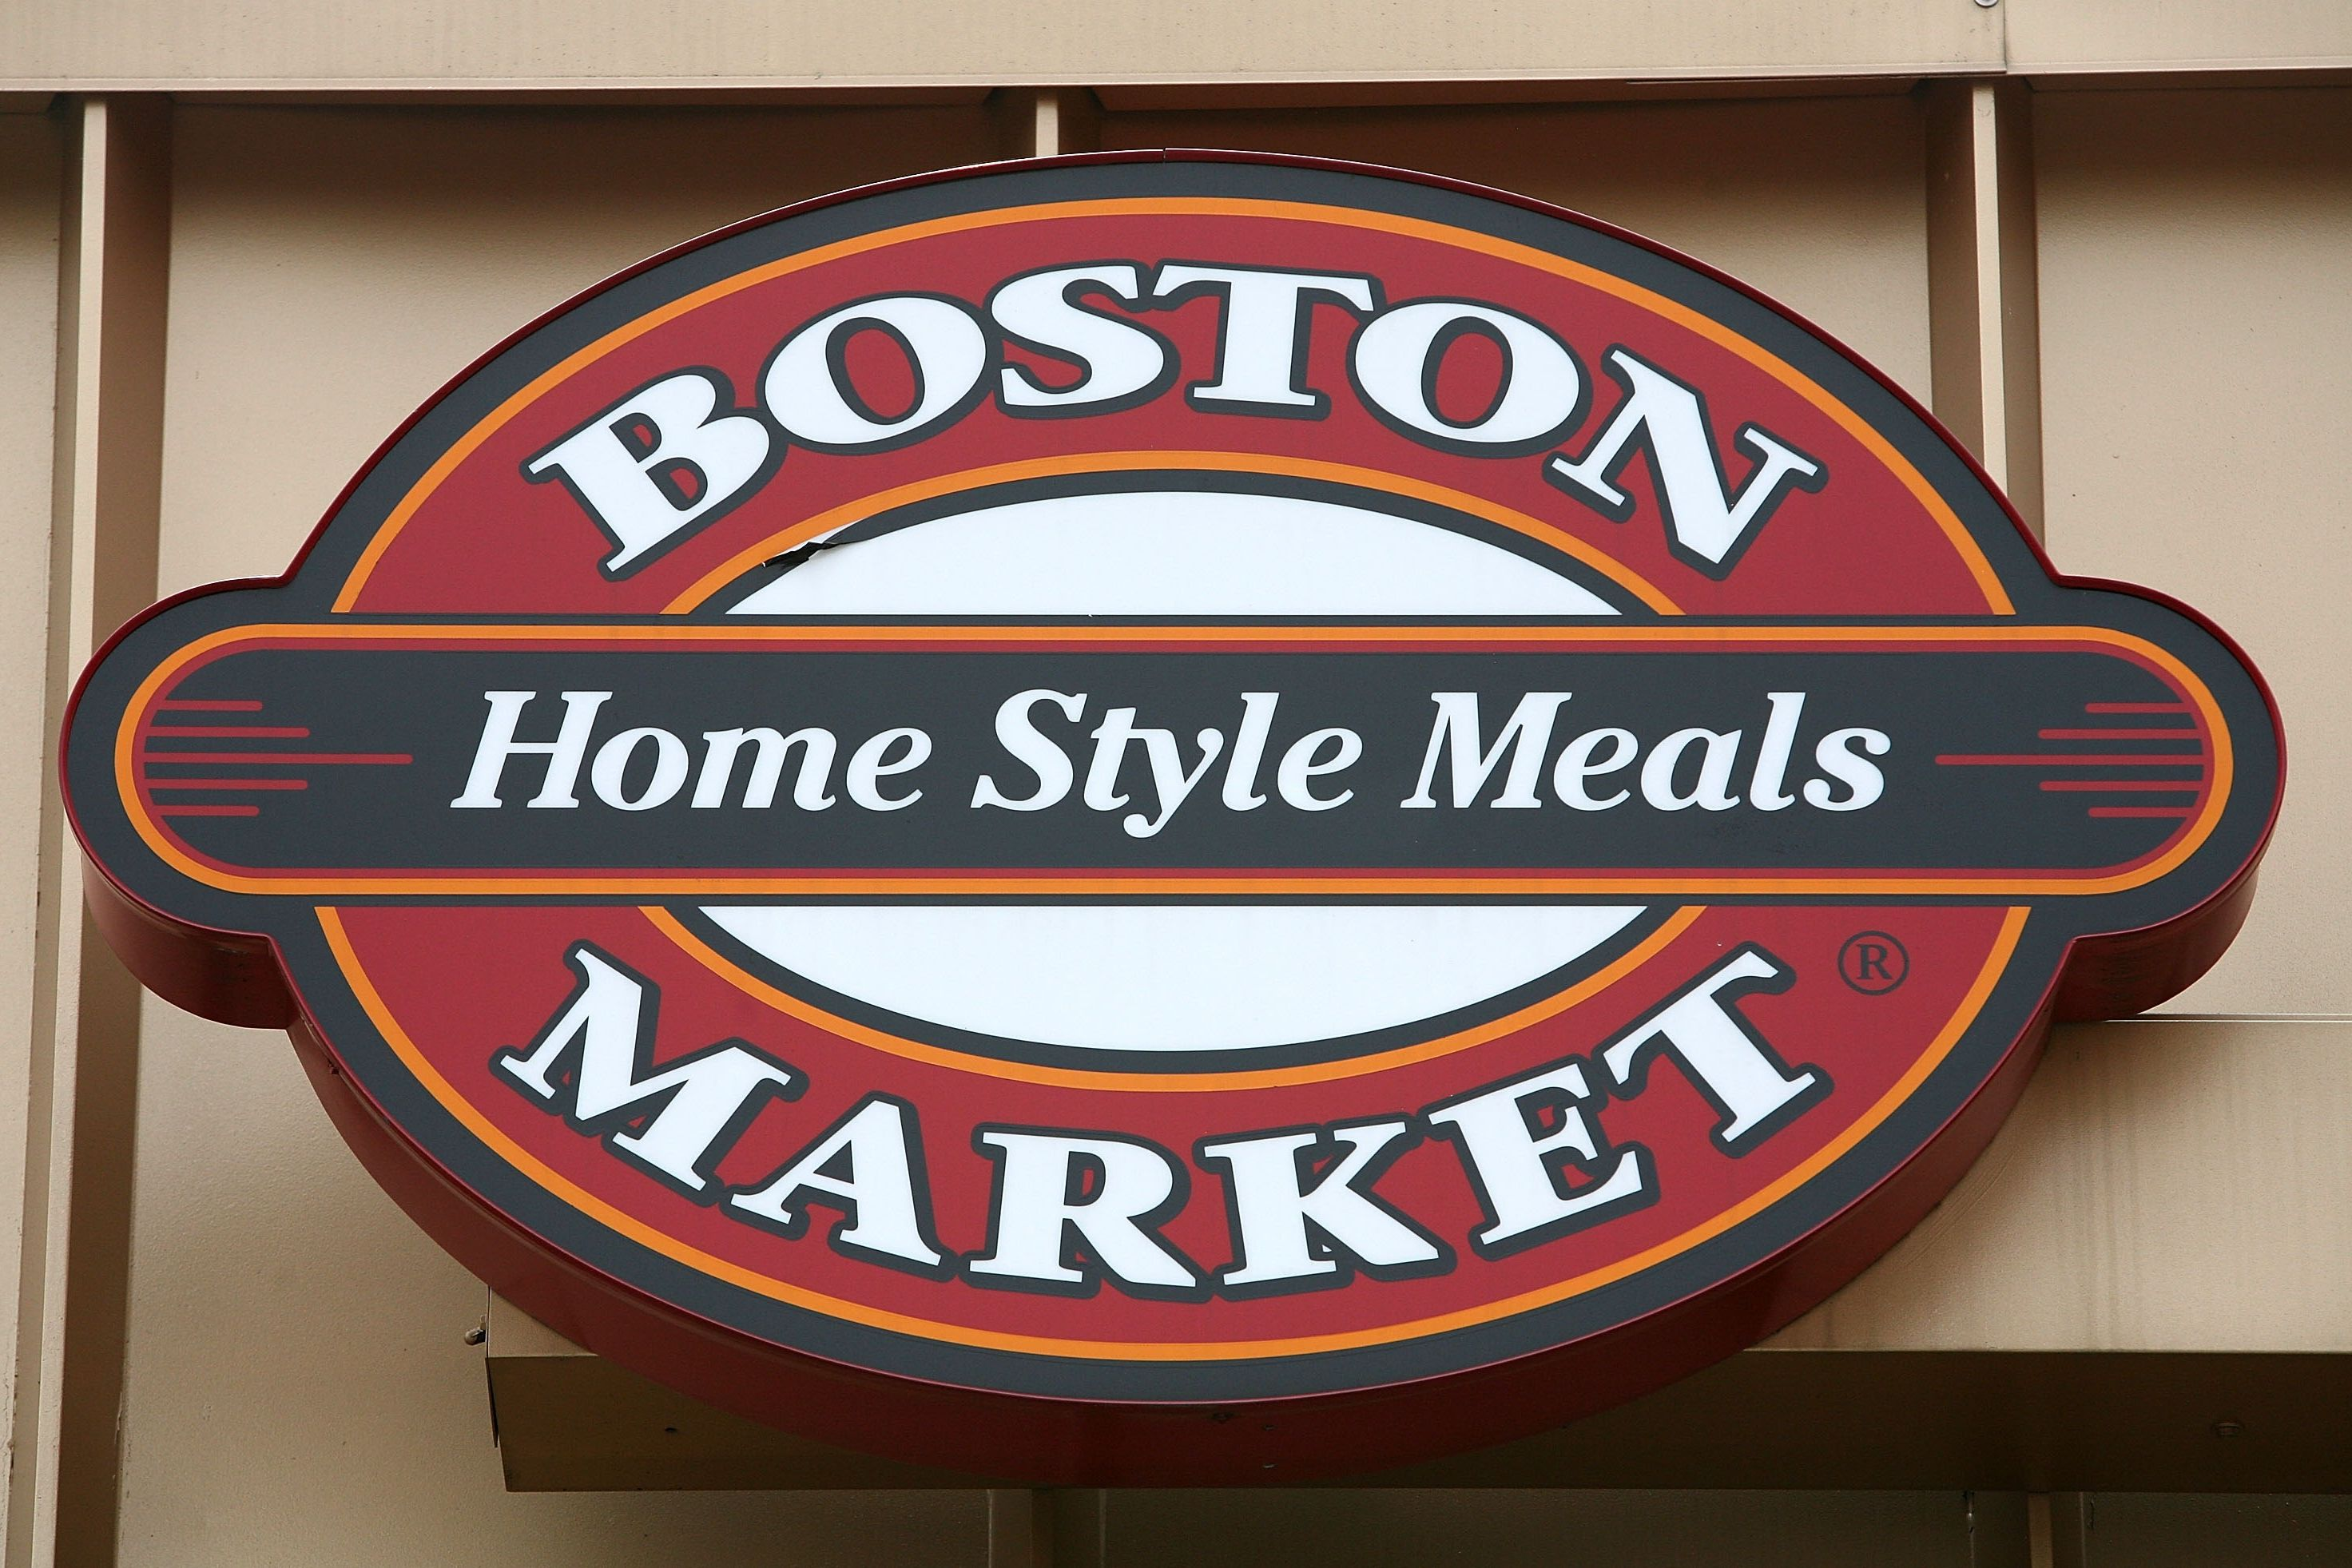 Boston Market - Fast Food Chains Open on Christmas Day